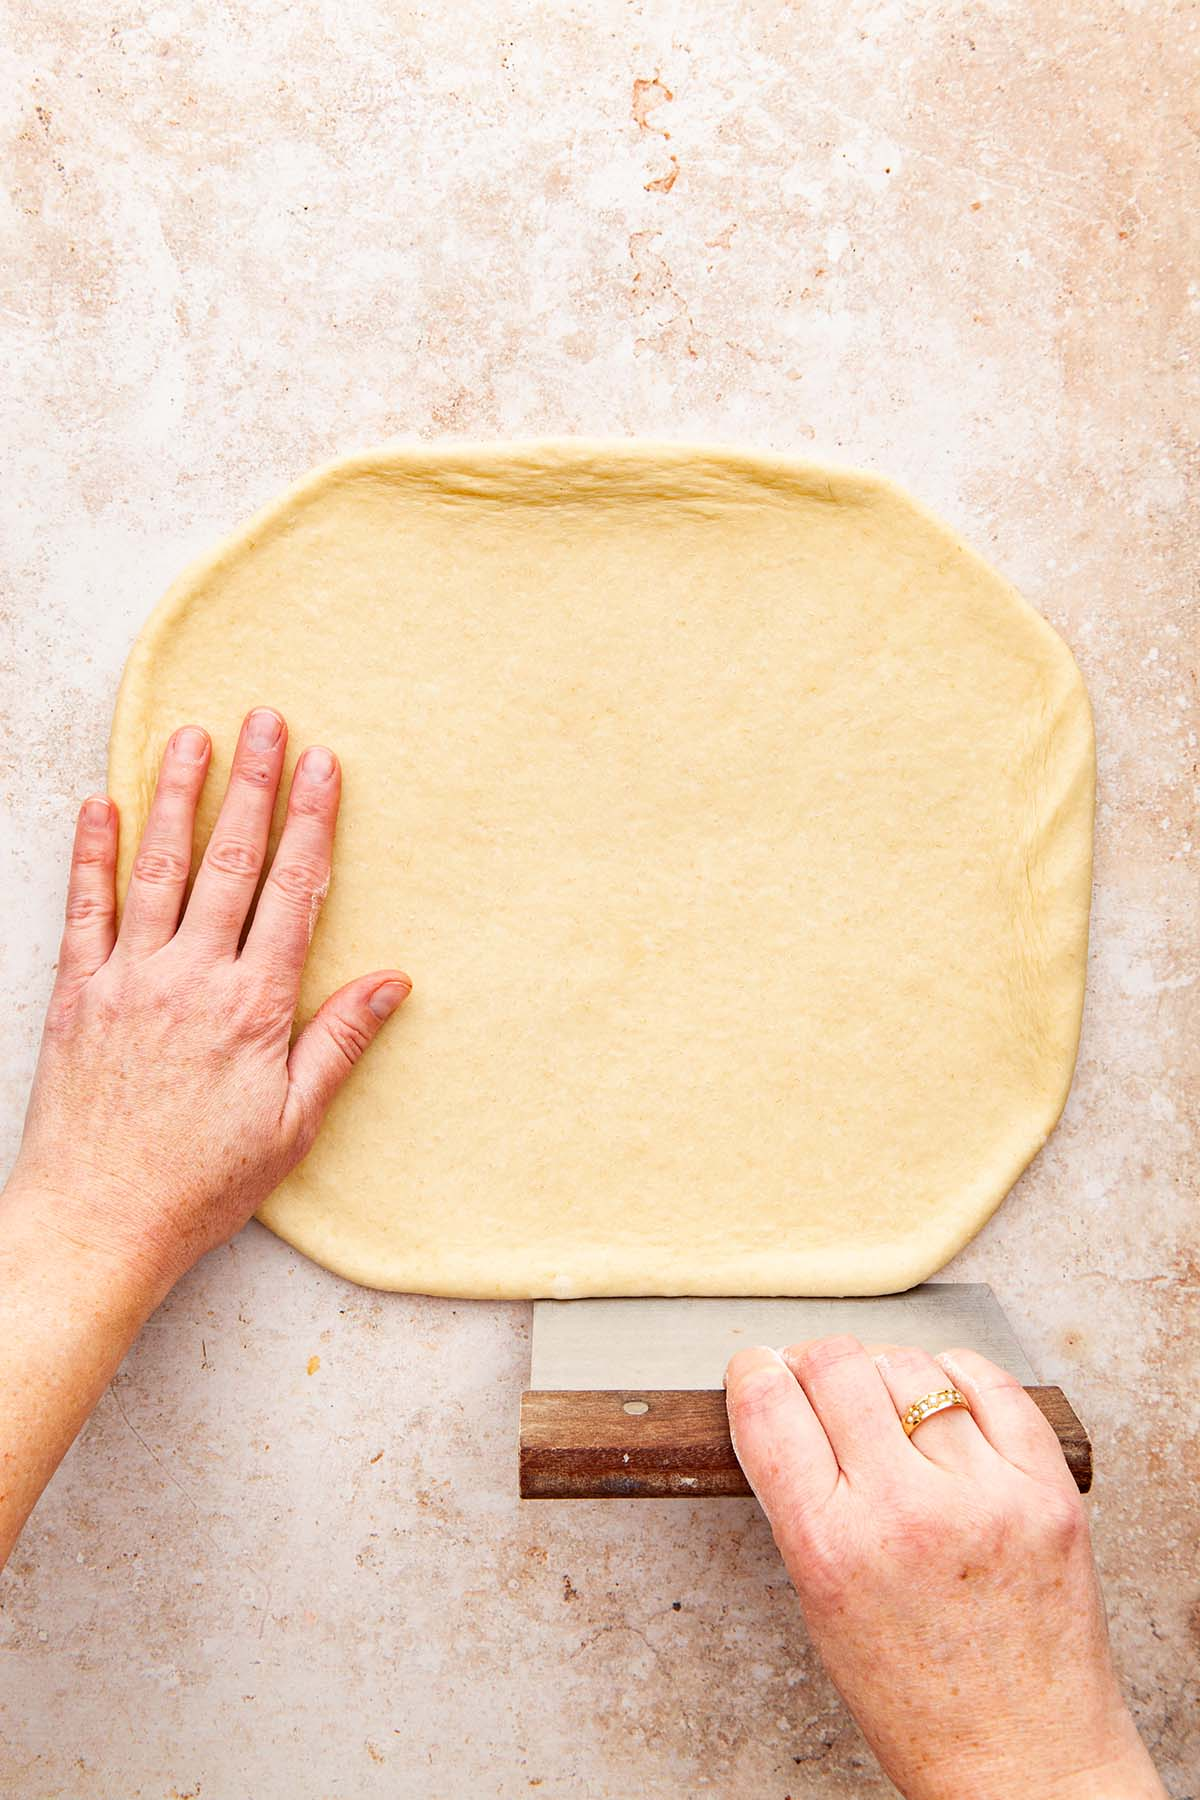 Hands straightening the sides of a rectangle of rolled out dough with a bench scraper.